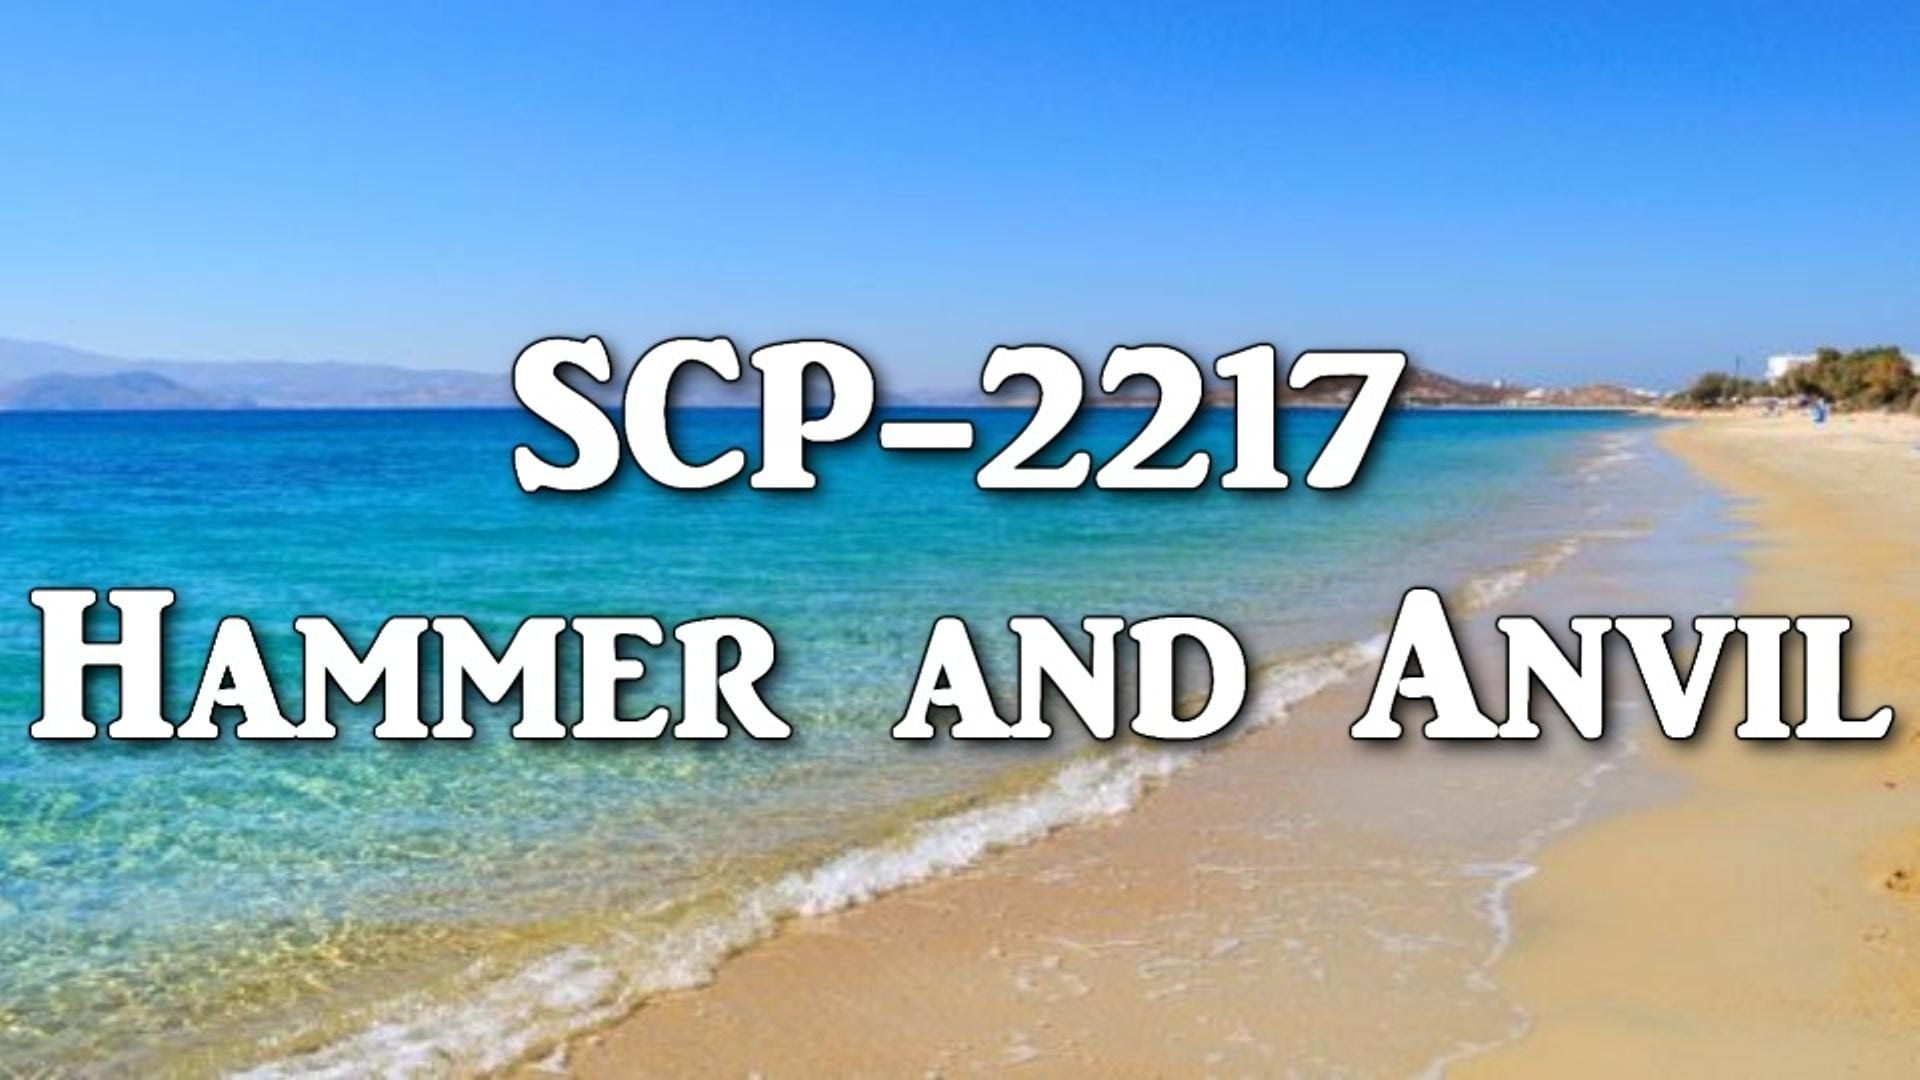 Scp 2217 Hammer And Anvil Object Class Thaumiel Scp Scp 610 Weird Stories Thaumiels are scps that can be used to protect or restore humanity, the world, or reality itself in the case of a catastrophic. pinterest